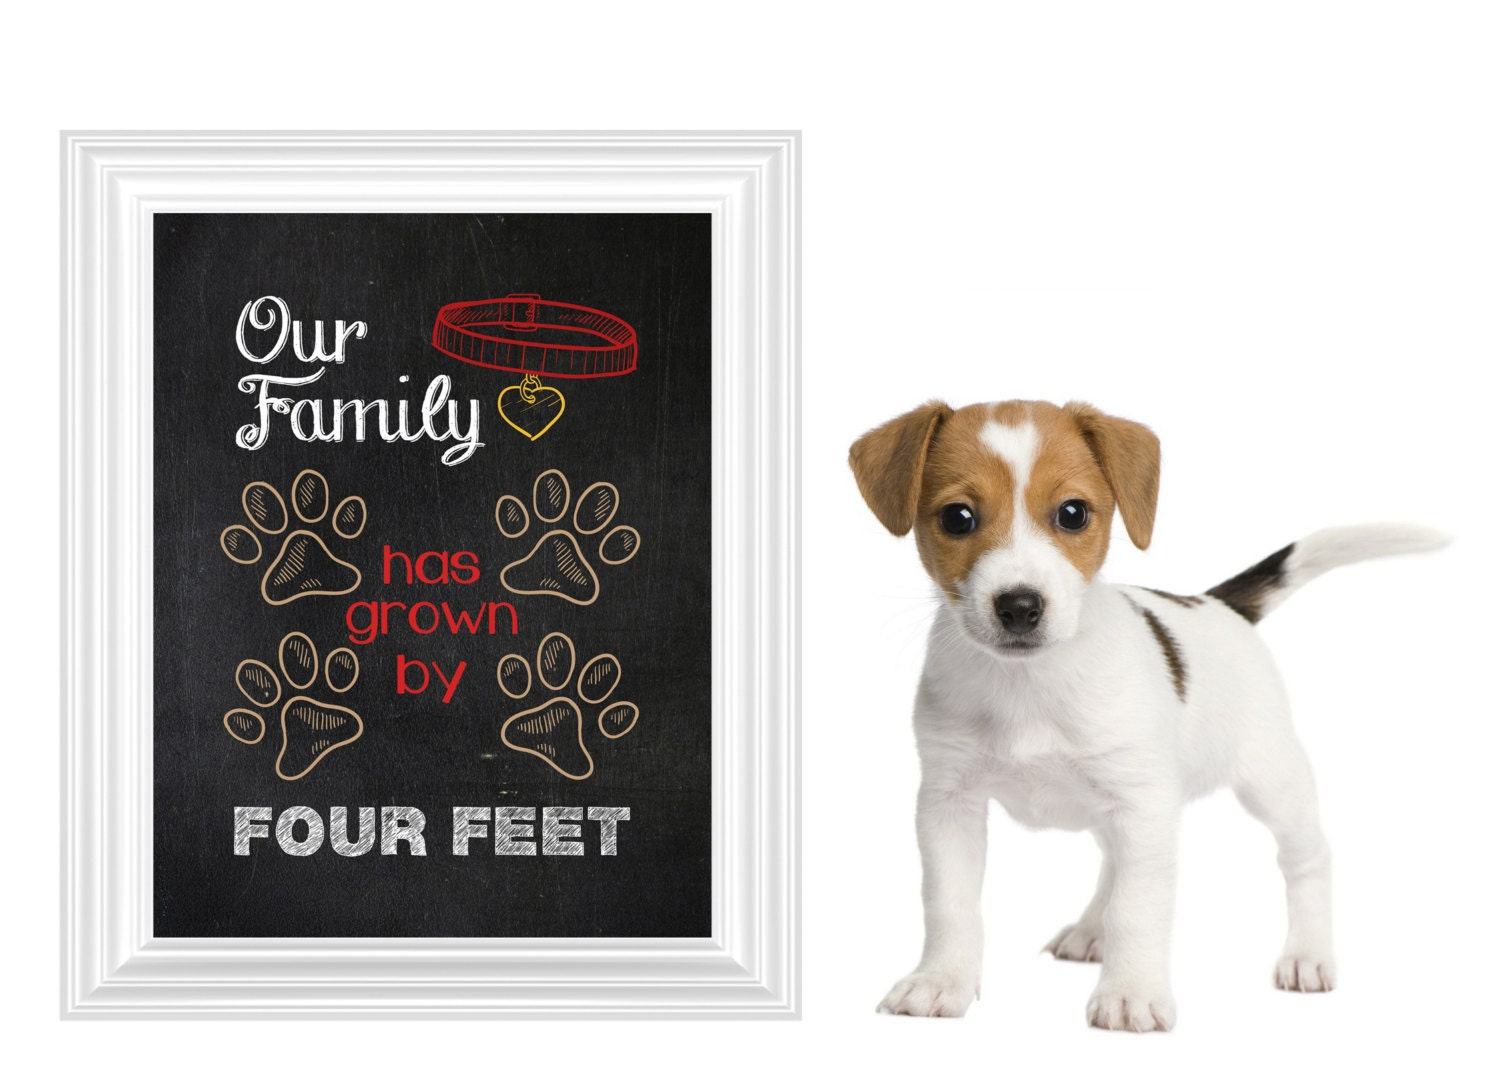 Puppy Announcement 14x11  Our Family Has Grown By Four Feet. Hair Design Pictures. Unit Lesson Plans Template. Concert Poster Ideas. Bill Payment Schedule Template. Trick Or Trunk. Free Resumes Templates Free. Wedding Water Bottle Labels Template. Graduate School Gpa Requirements